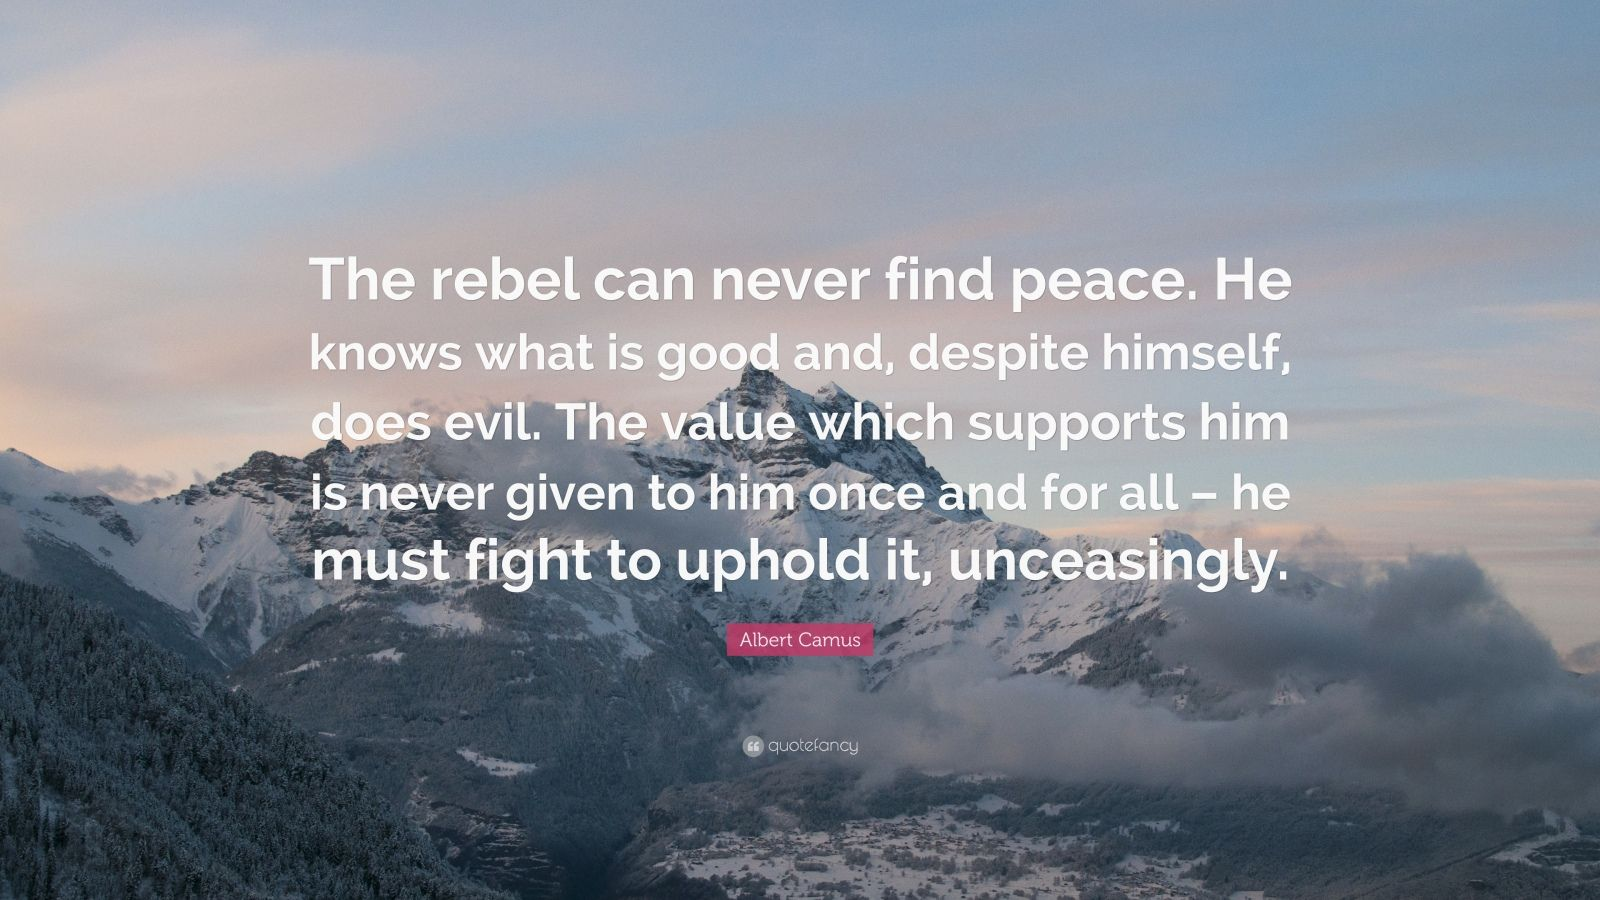 """Albert Camus Quote: """"The rebel can never find peace. He knows what is good and, despite himself, does evil. The value which supports him is never given to him once and for all – he must fight to uphold it, unceasingly."""""""